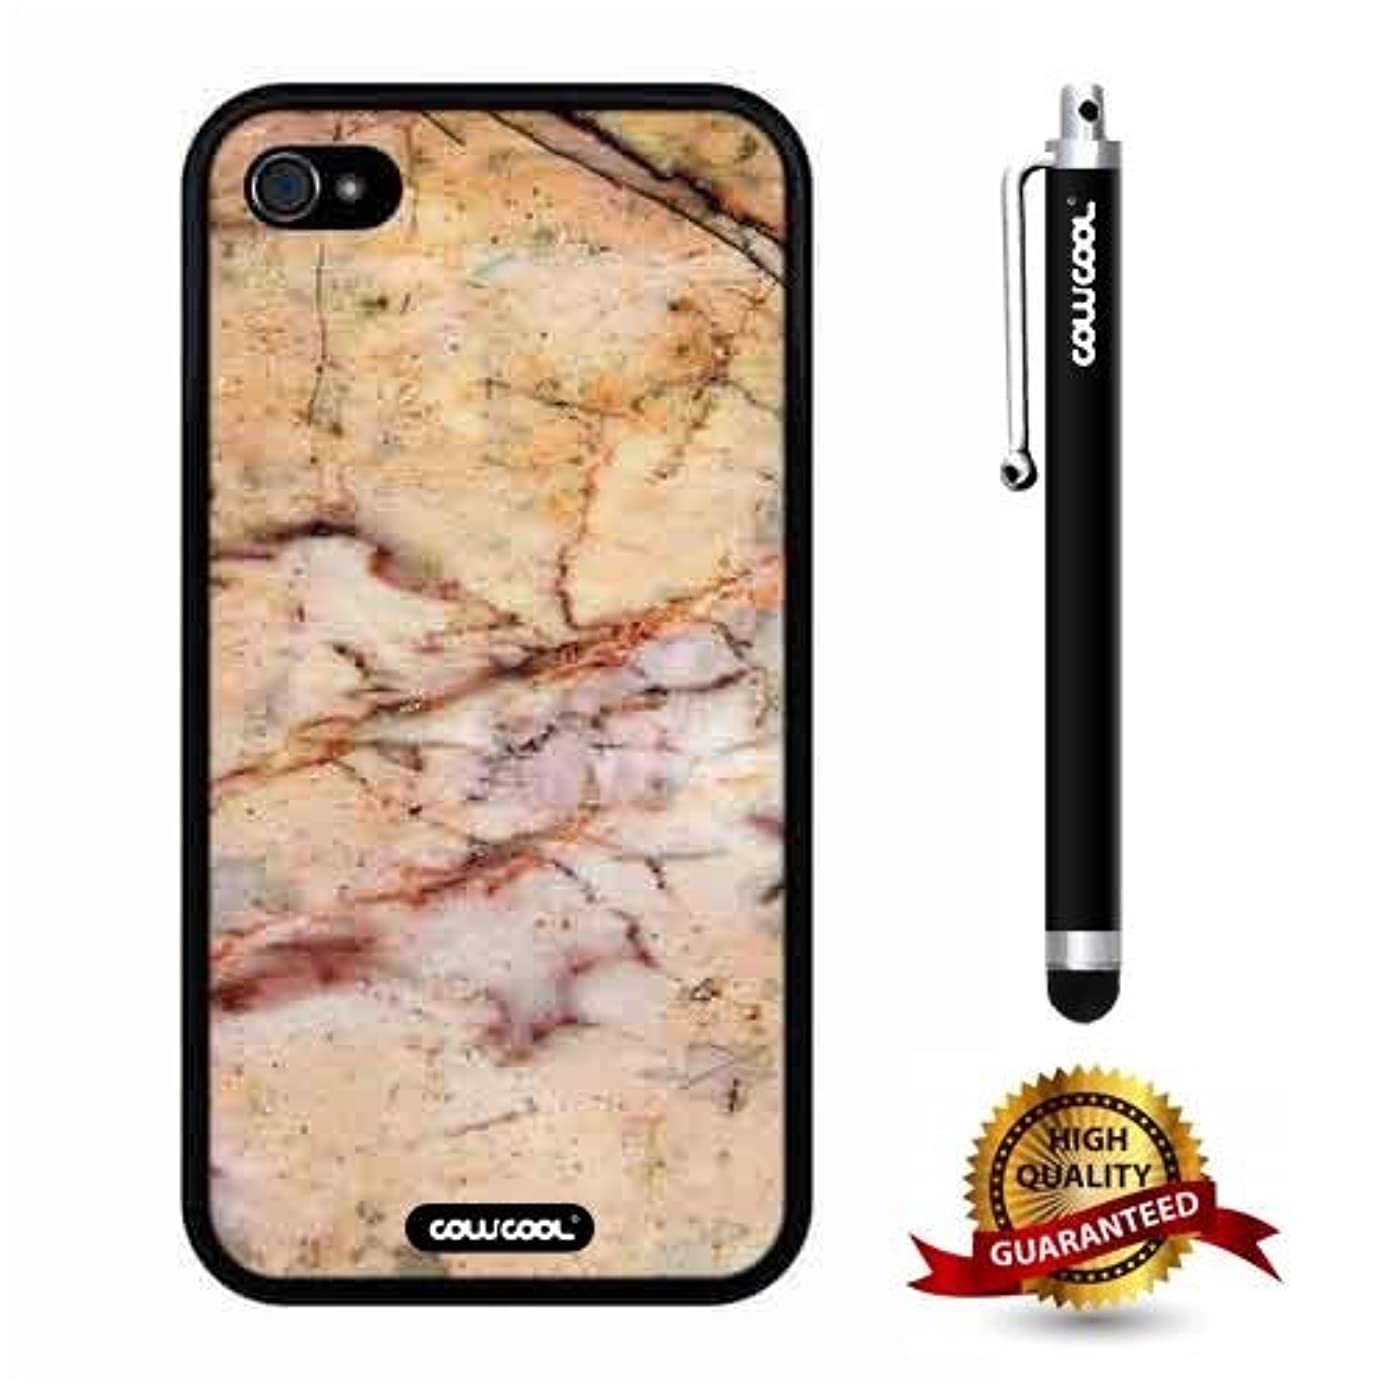 iphone 4S Case, Marble Pattern Case, Cowcool Ultra Thin Soft Silicone Case for Apple iphone 4S - Slash The Times Marble Texture